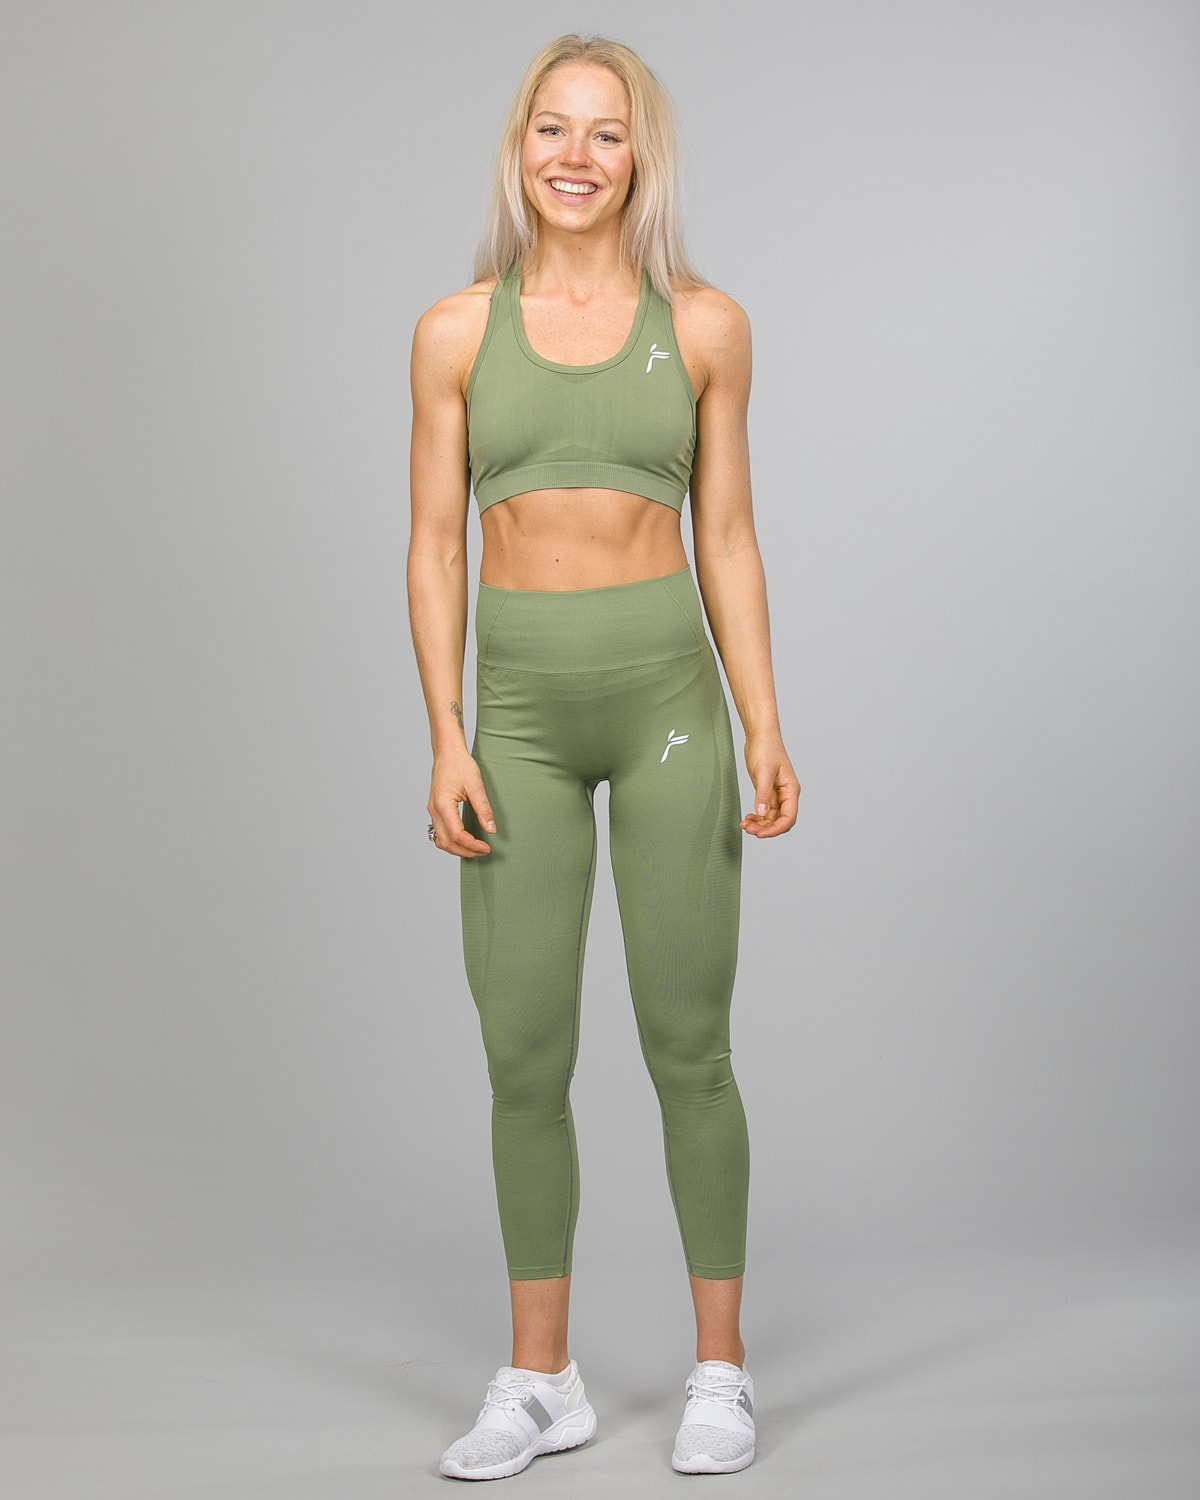 Famme Vortex Legging vhwl-ag and Drop It Sports Bra disb-ag Army Green